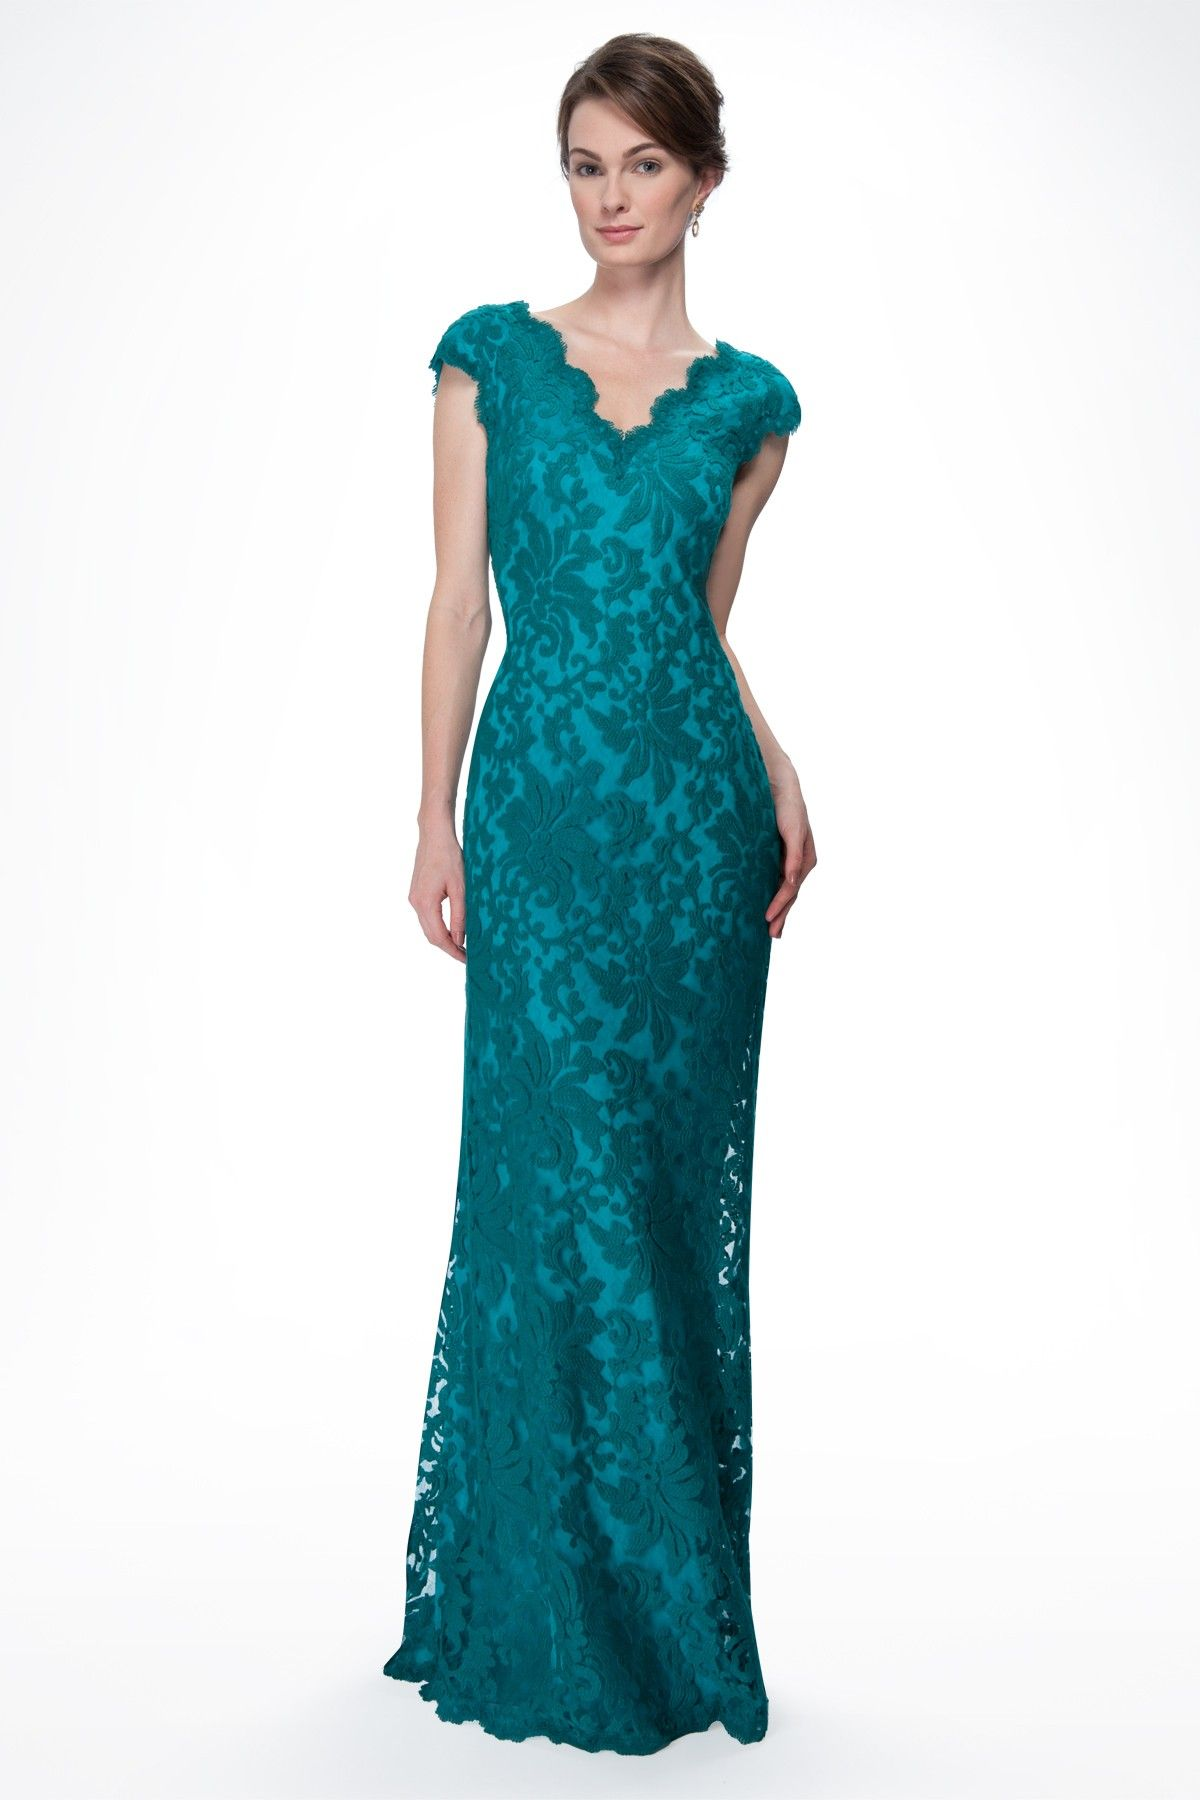 Embroidered Lace Scalloped V-Neck Gown in Aqua - Mother of the Bride - Wedding | Tadashi Shoji